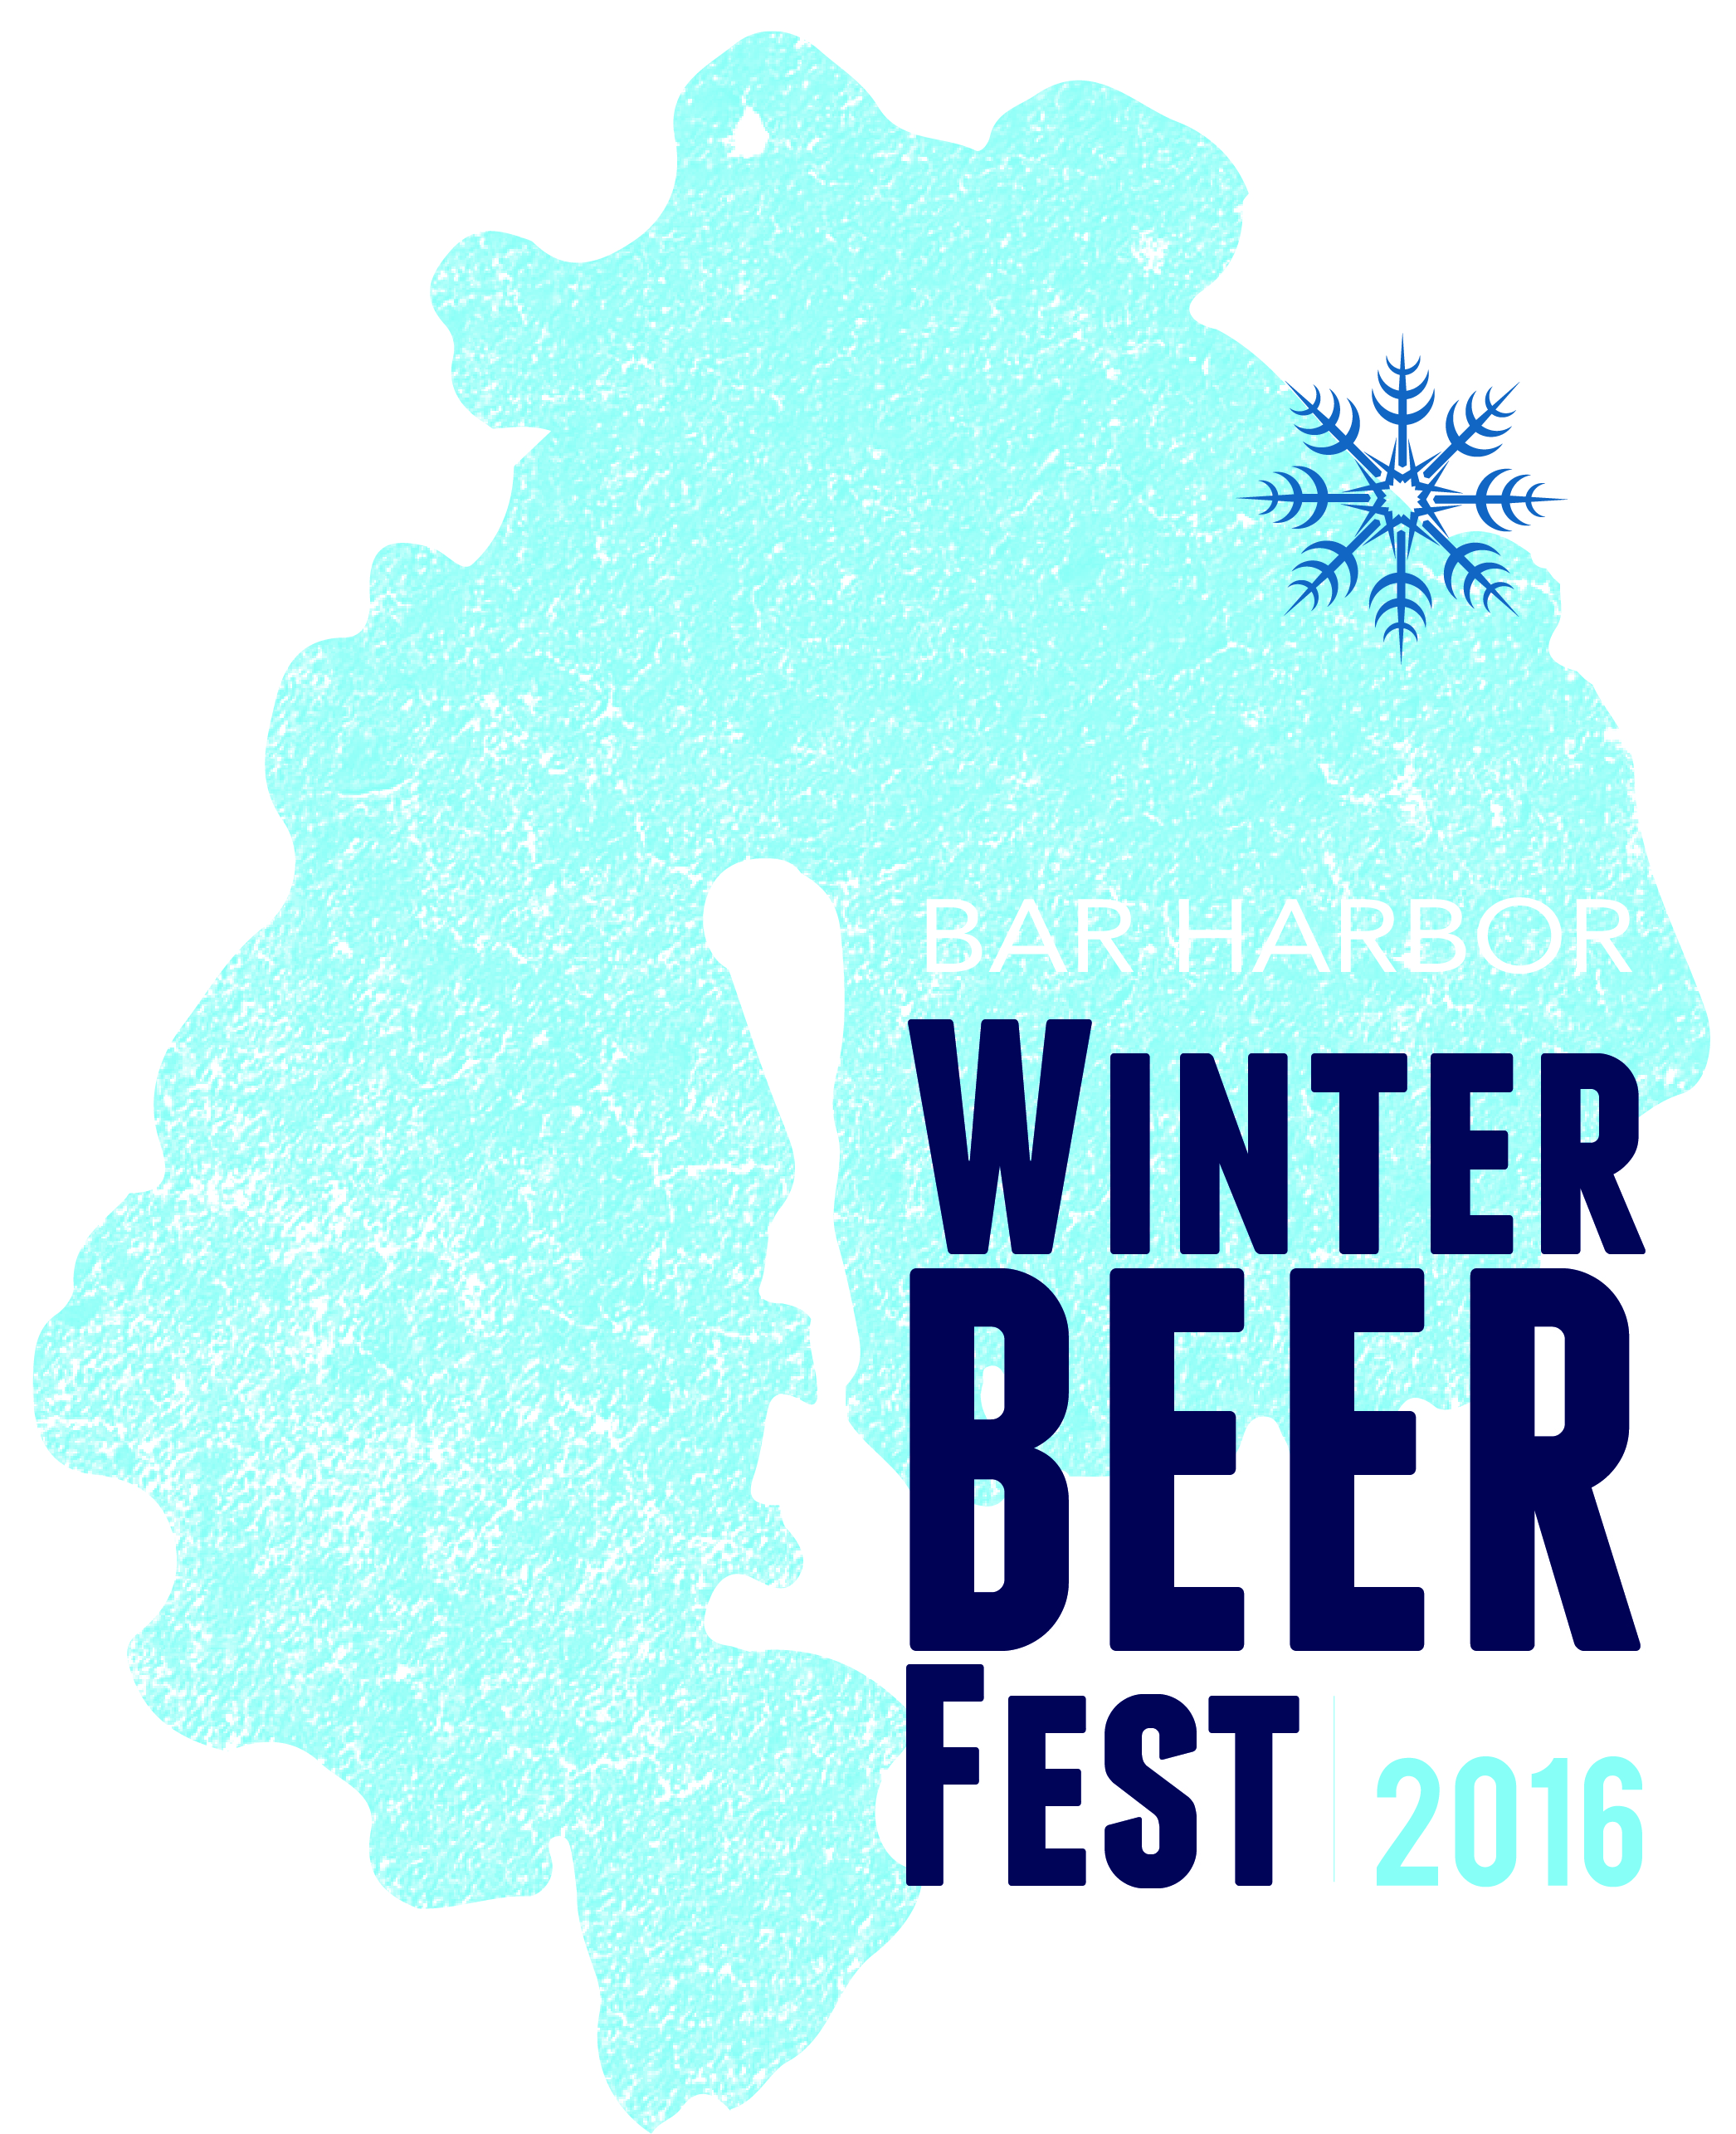 bh_coc_2016_beer_ fest_logo_final_white_bkgrd-01